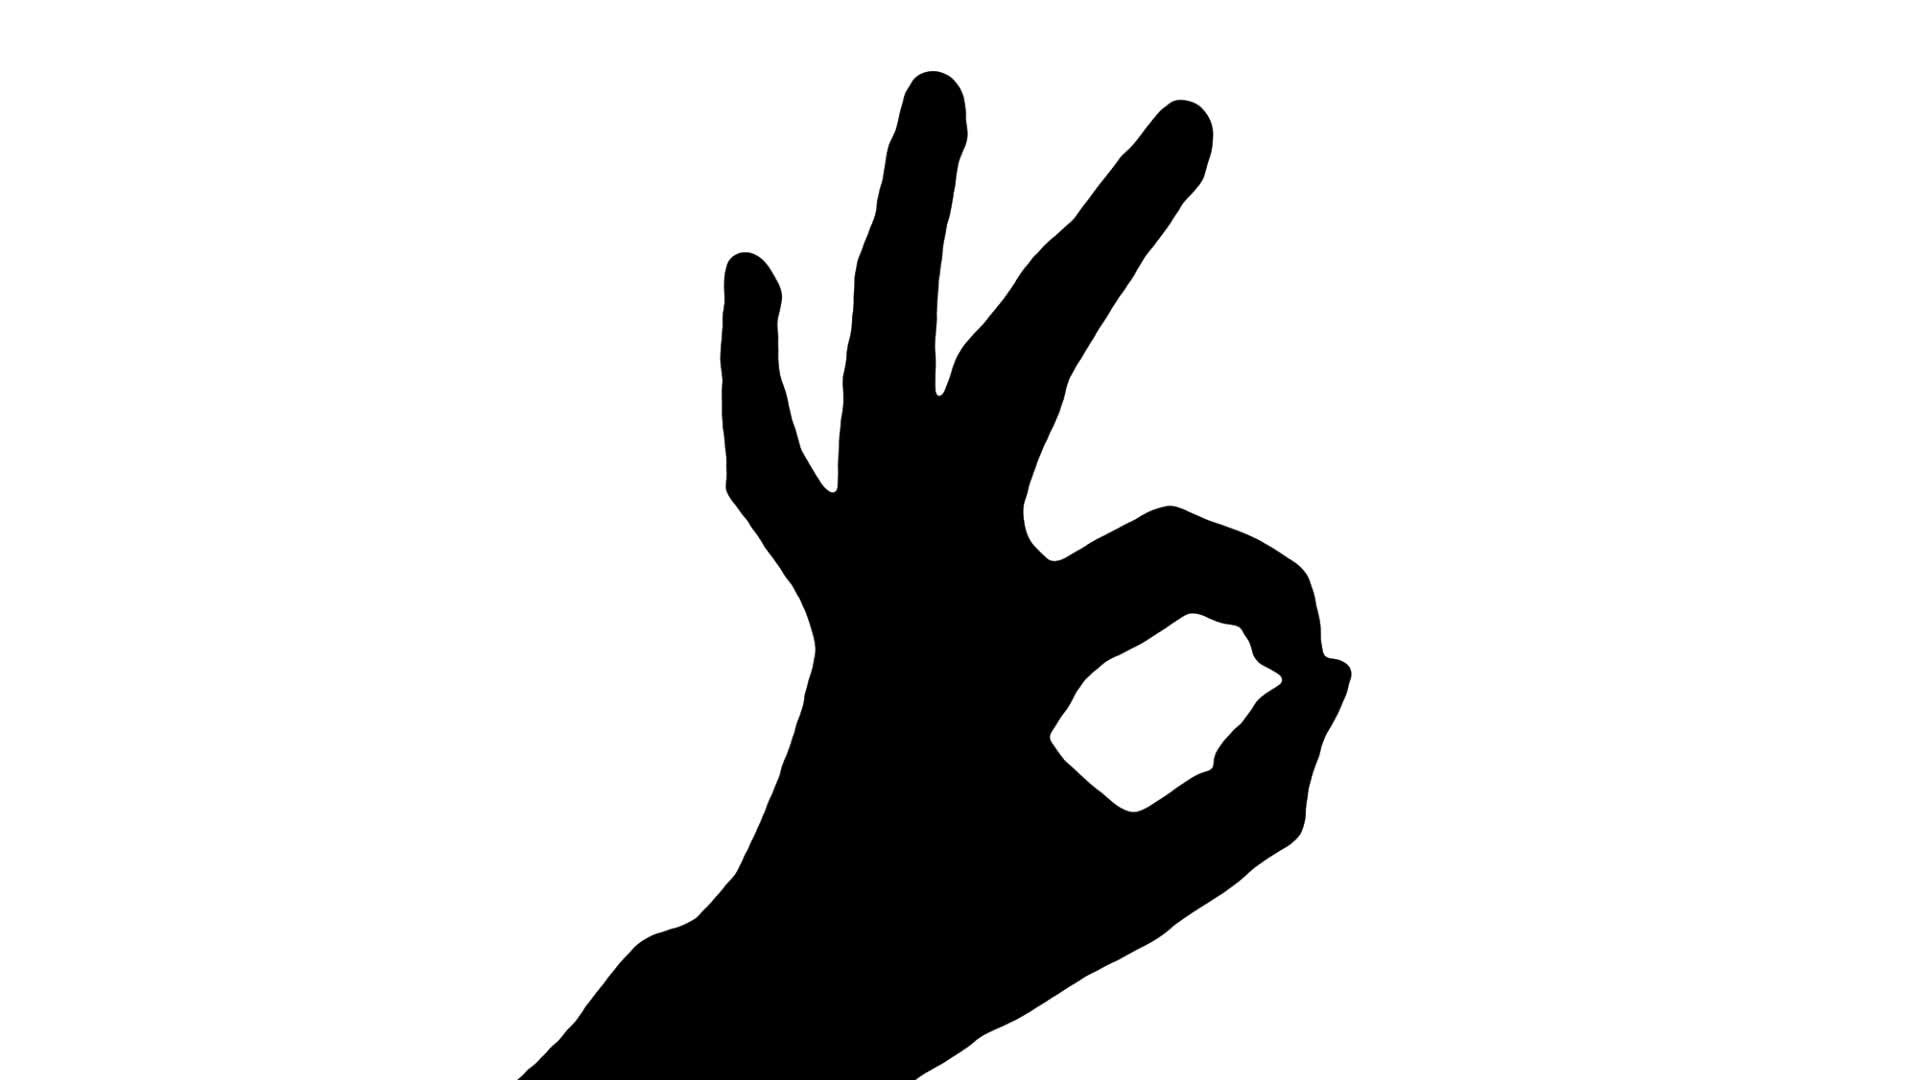 19 ok sign free cliparts that you can download to you computer and use ...